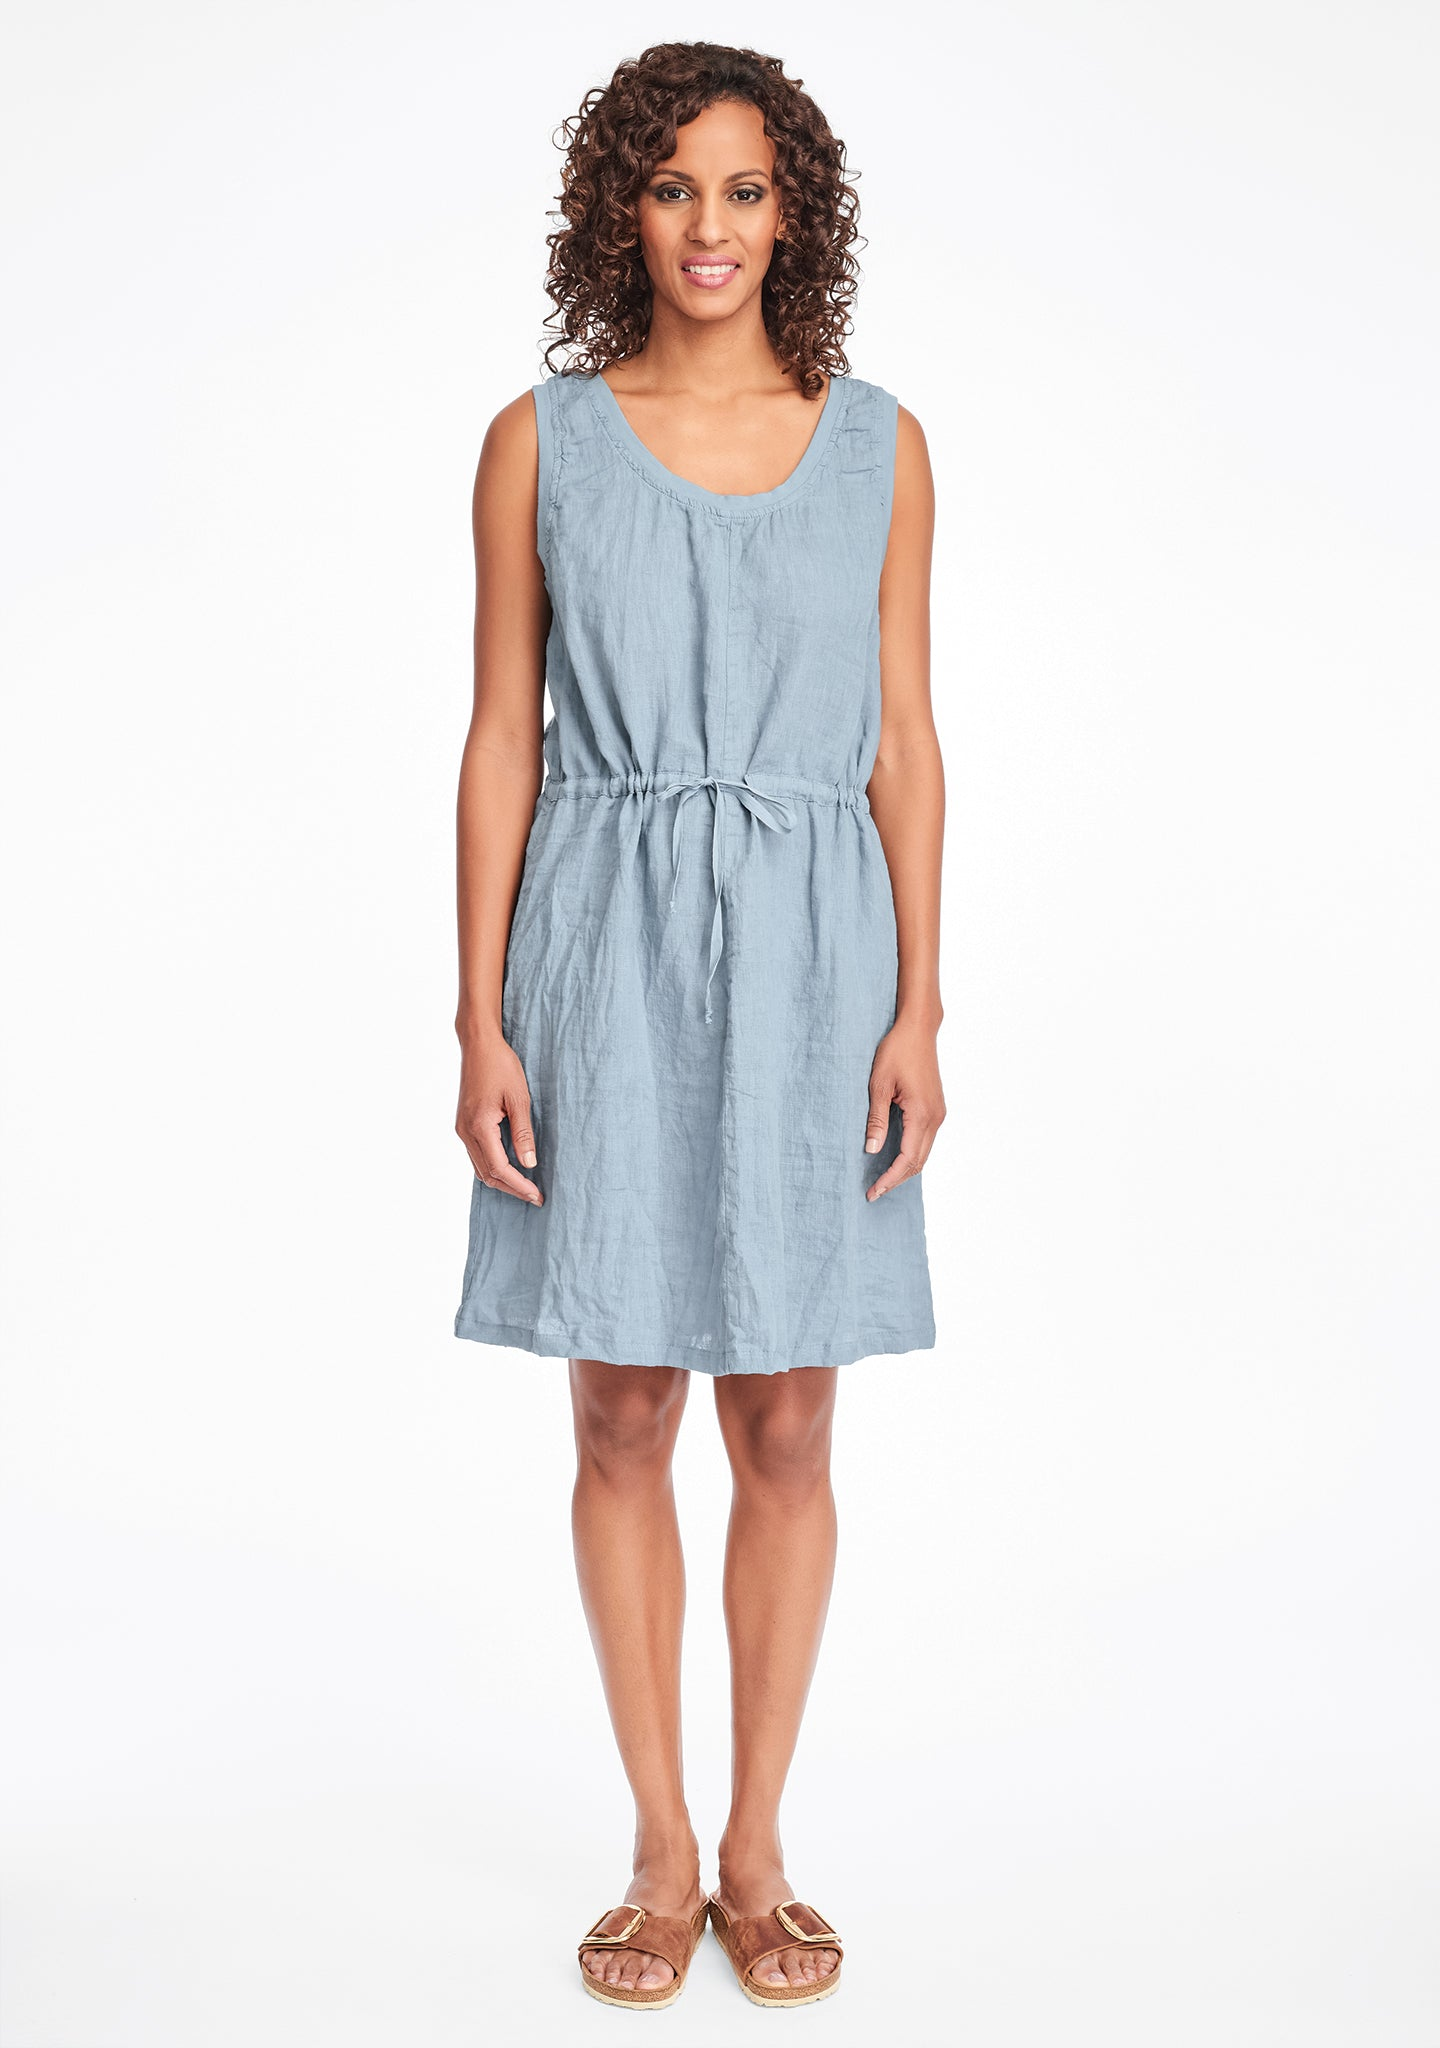 metro dress linen summer dress blue